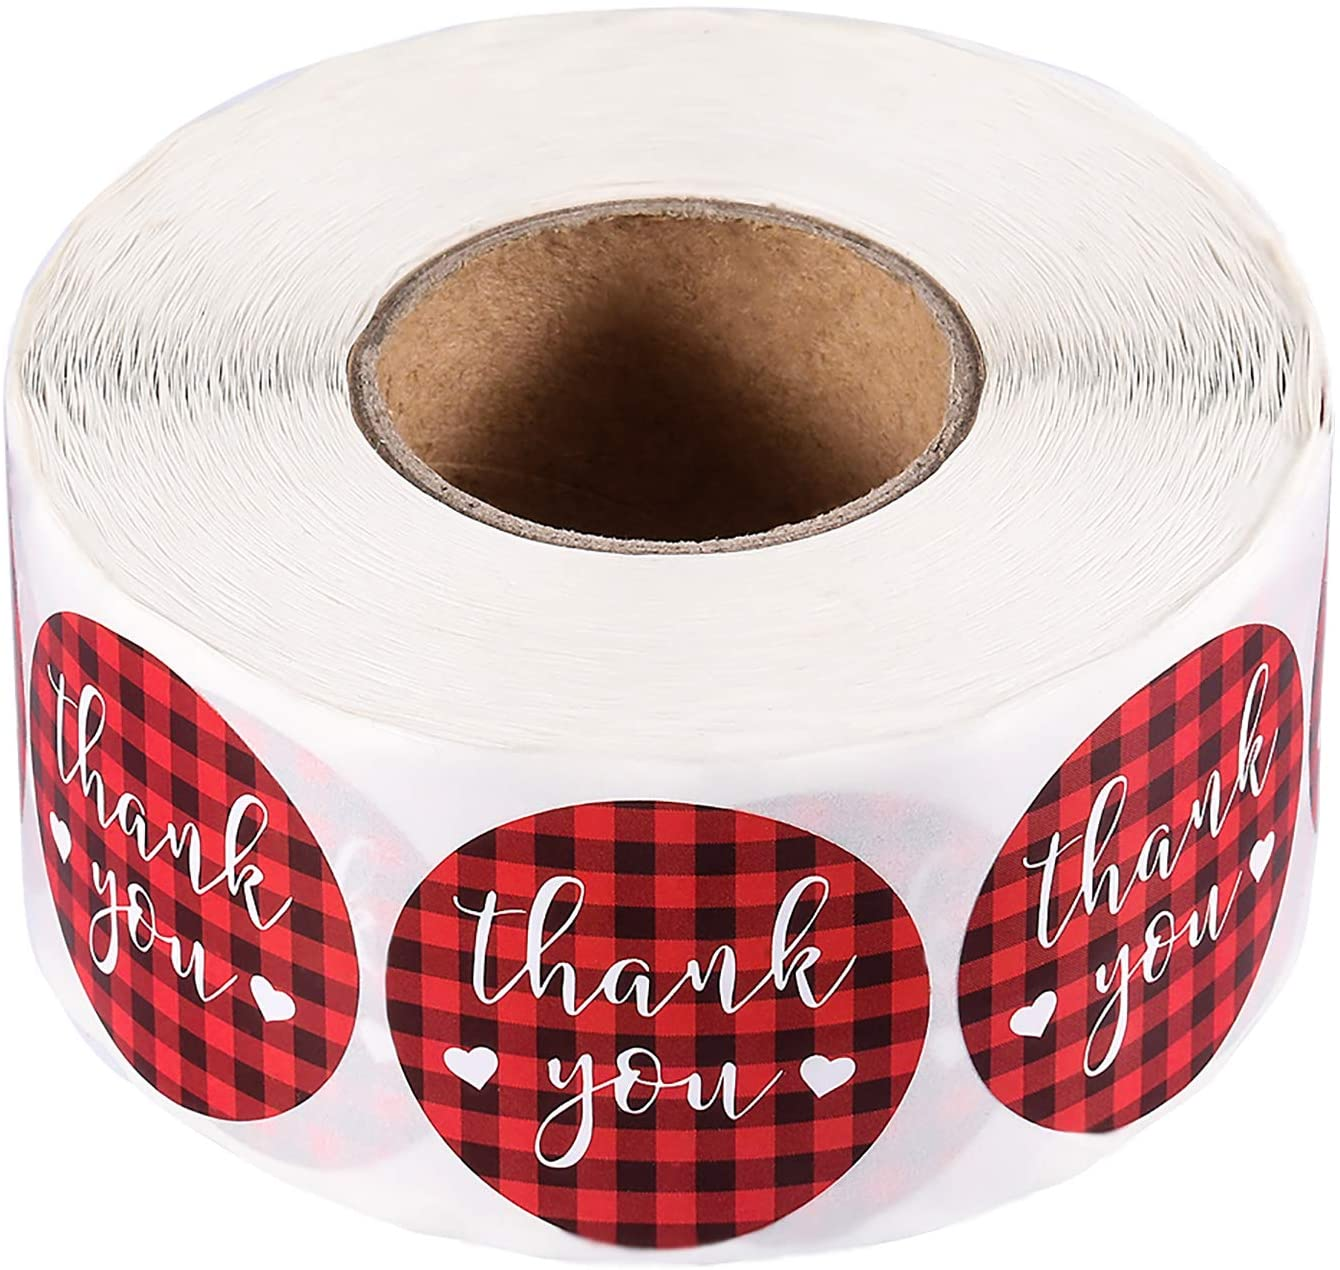 Thank You Stickers Labels Roll, 1000 Pieces 1.5 Inch Buffalo Plaid Self Adhesive Thank You Labels for Gifts, Thank You Cards, Envelopes, Mailing Bags,Wedding, Party, Baby Shower